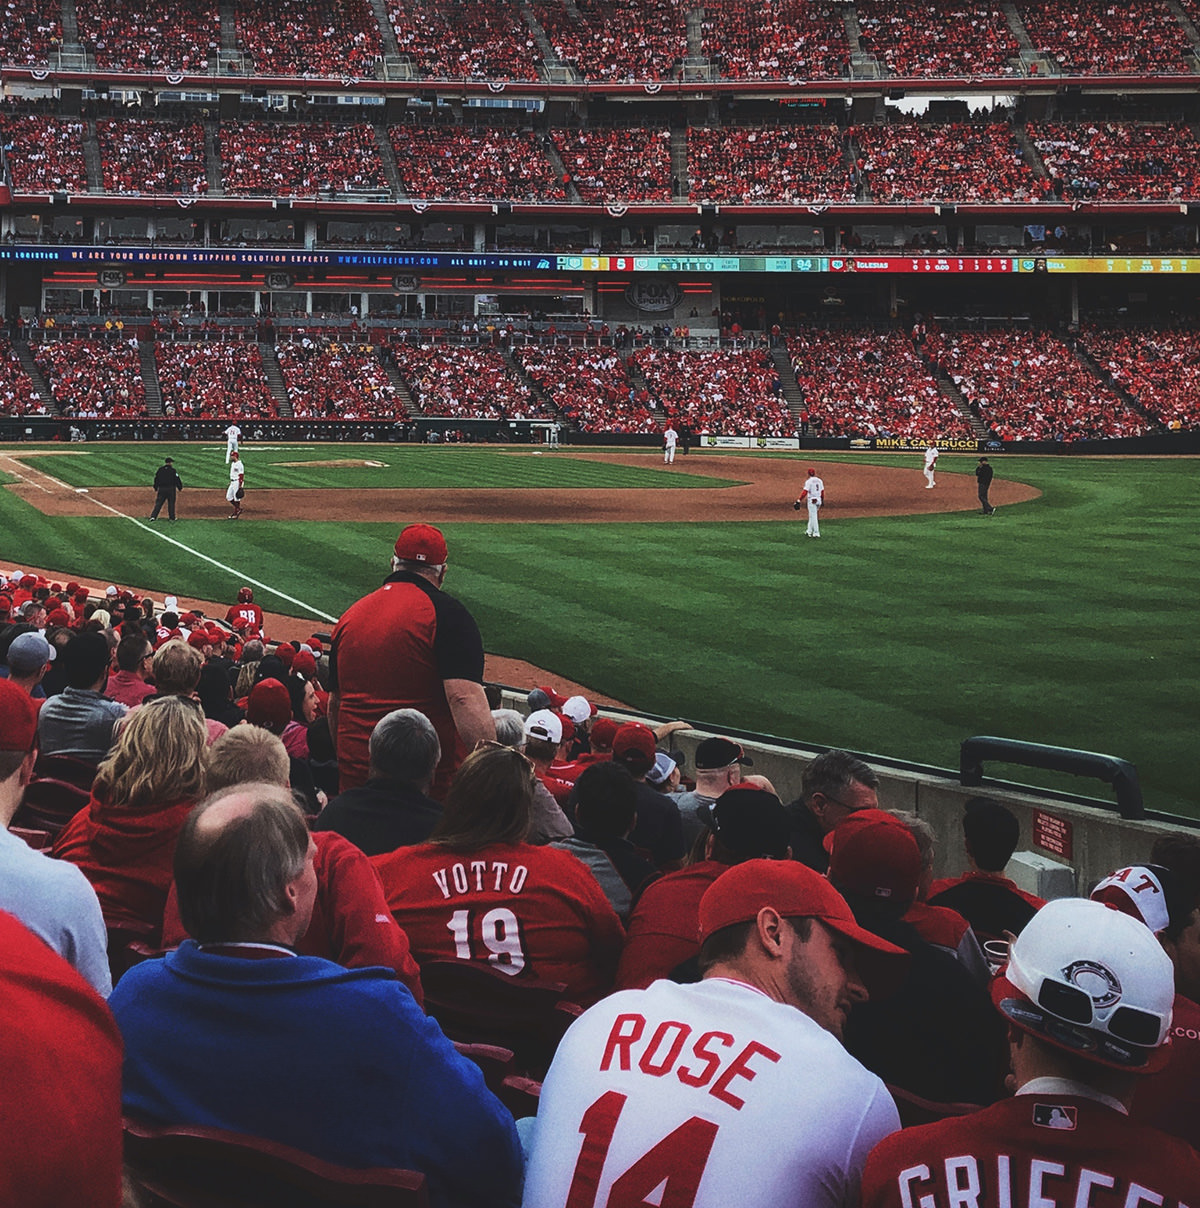 A baseball fans watching the game in a stadium